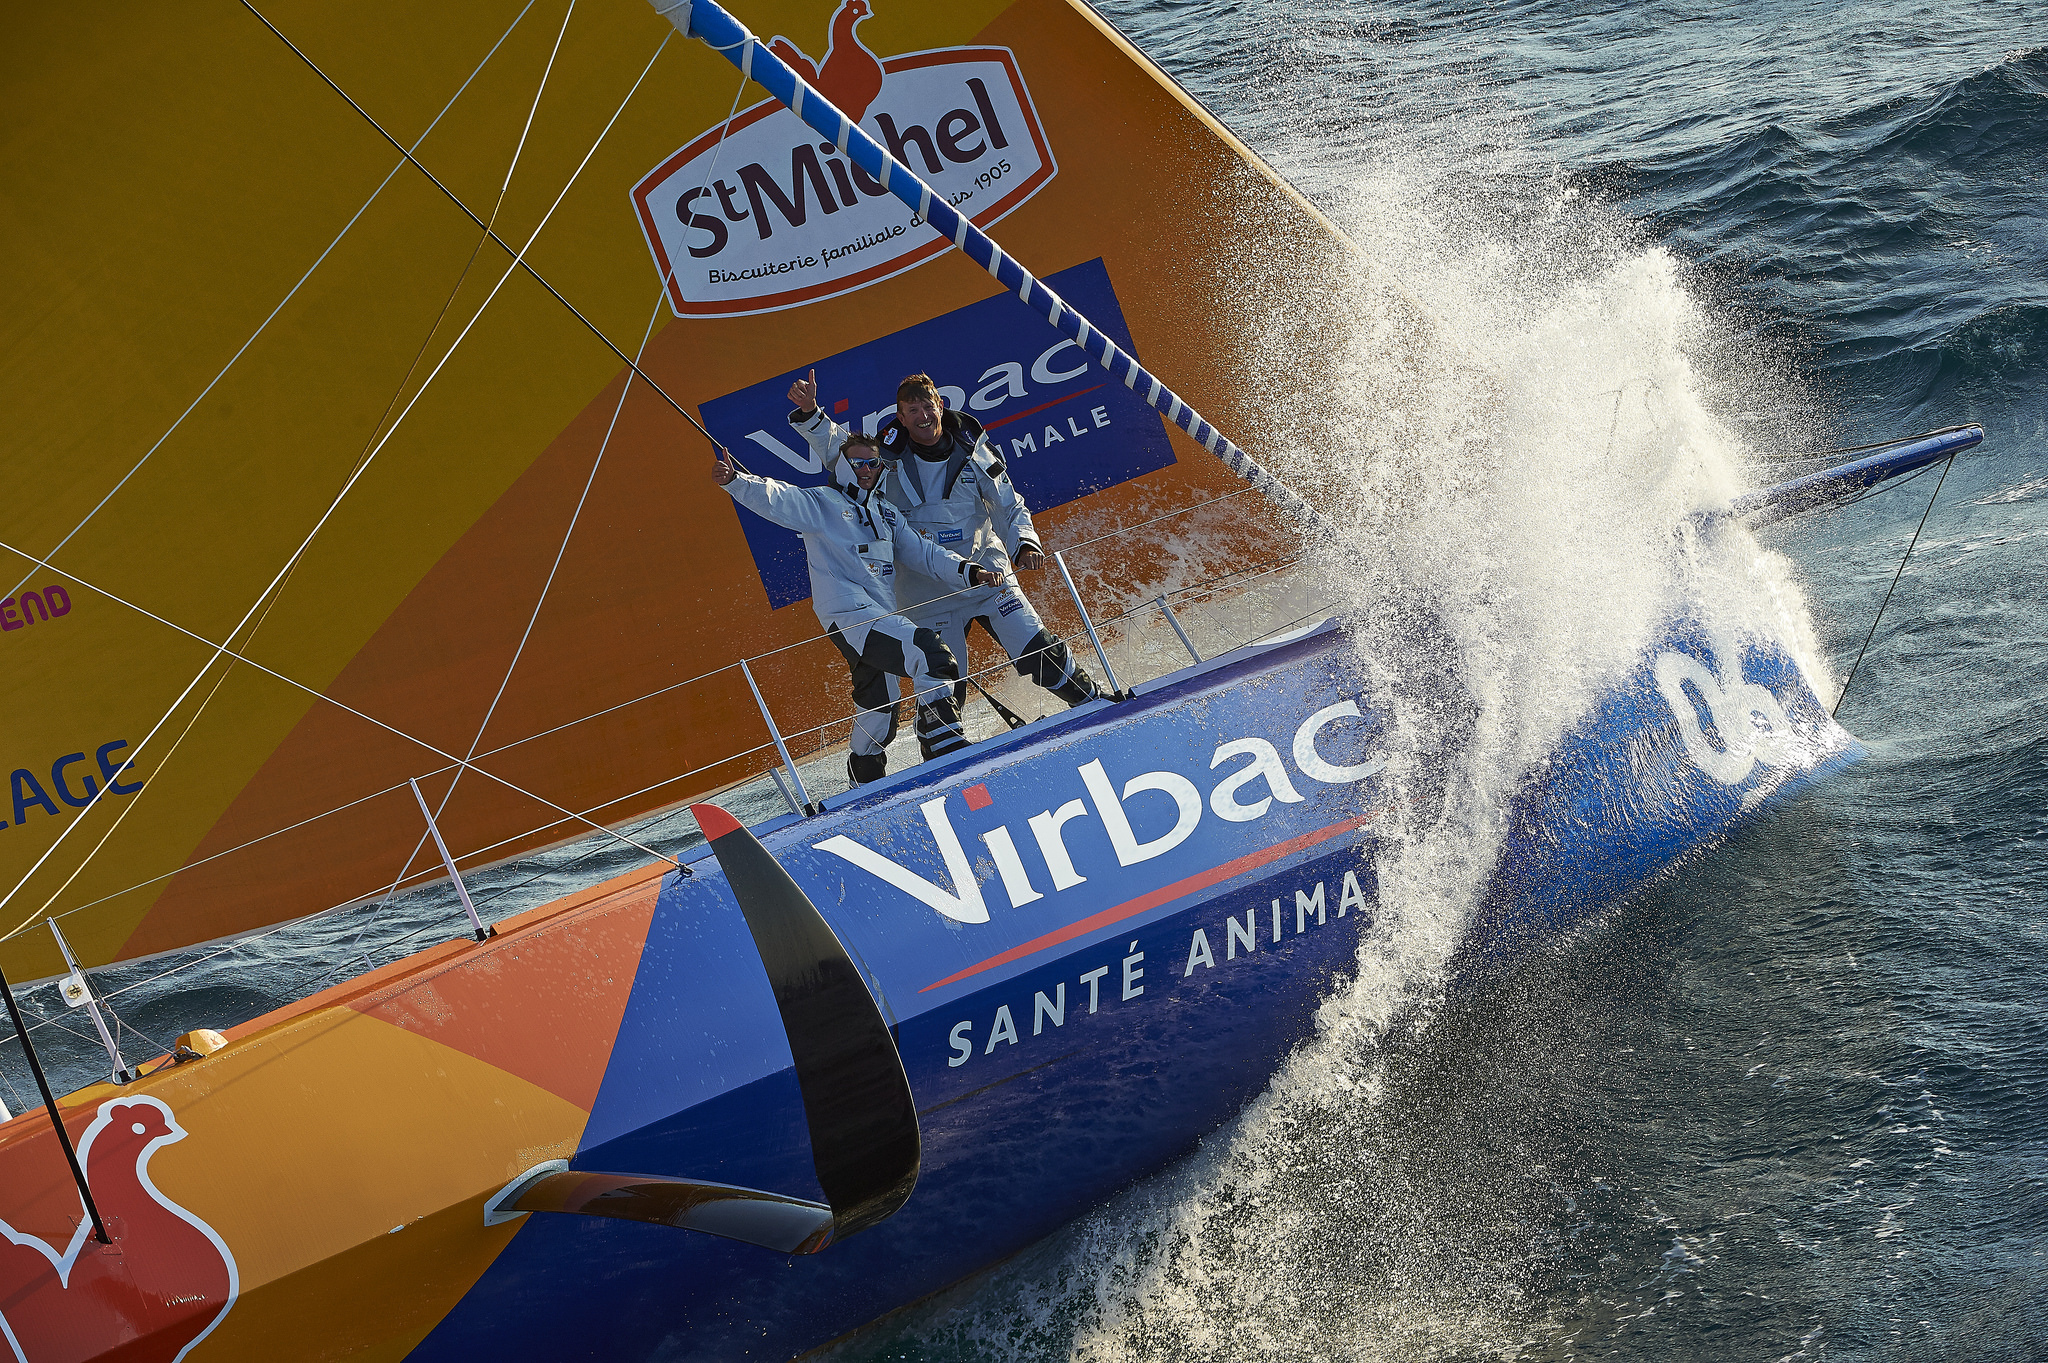 The IMOCA Ocean Masters team will have a technical stop at Newport Shipyard before their May 29 start in New York City.